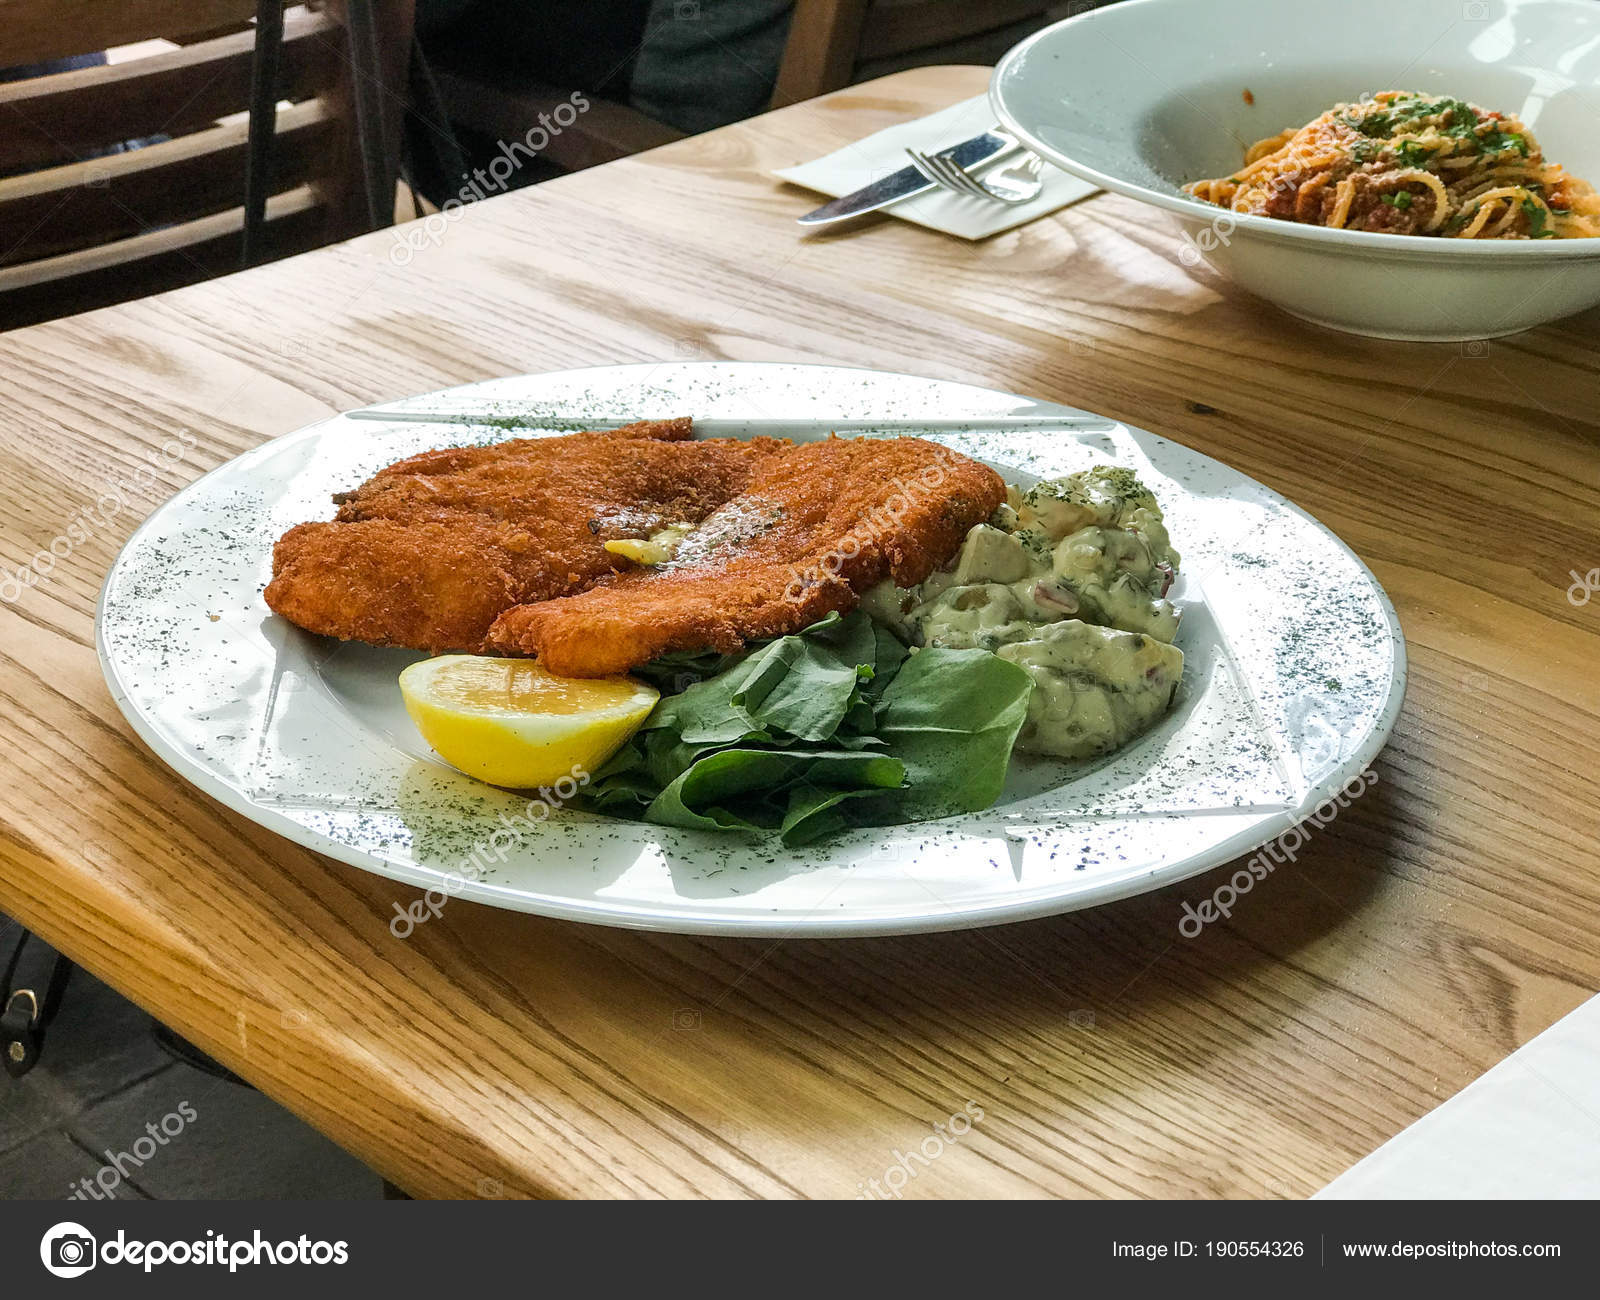 Schnitzel Restaurant Chicken Schnitzel With Potato Salad And Lemon Served At Restaurant